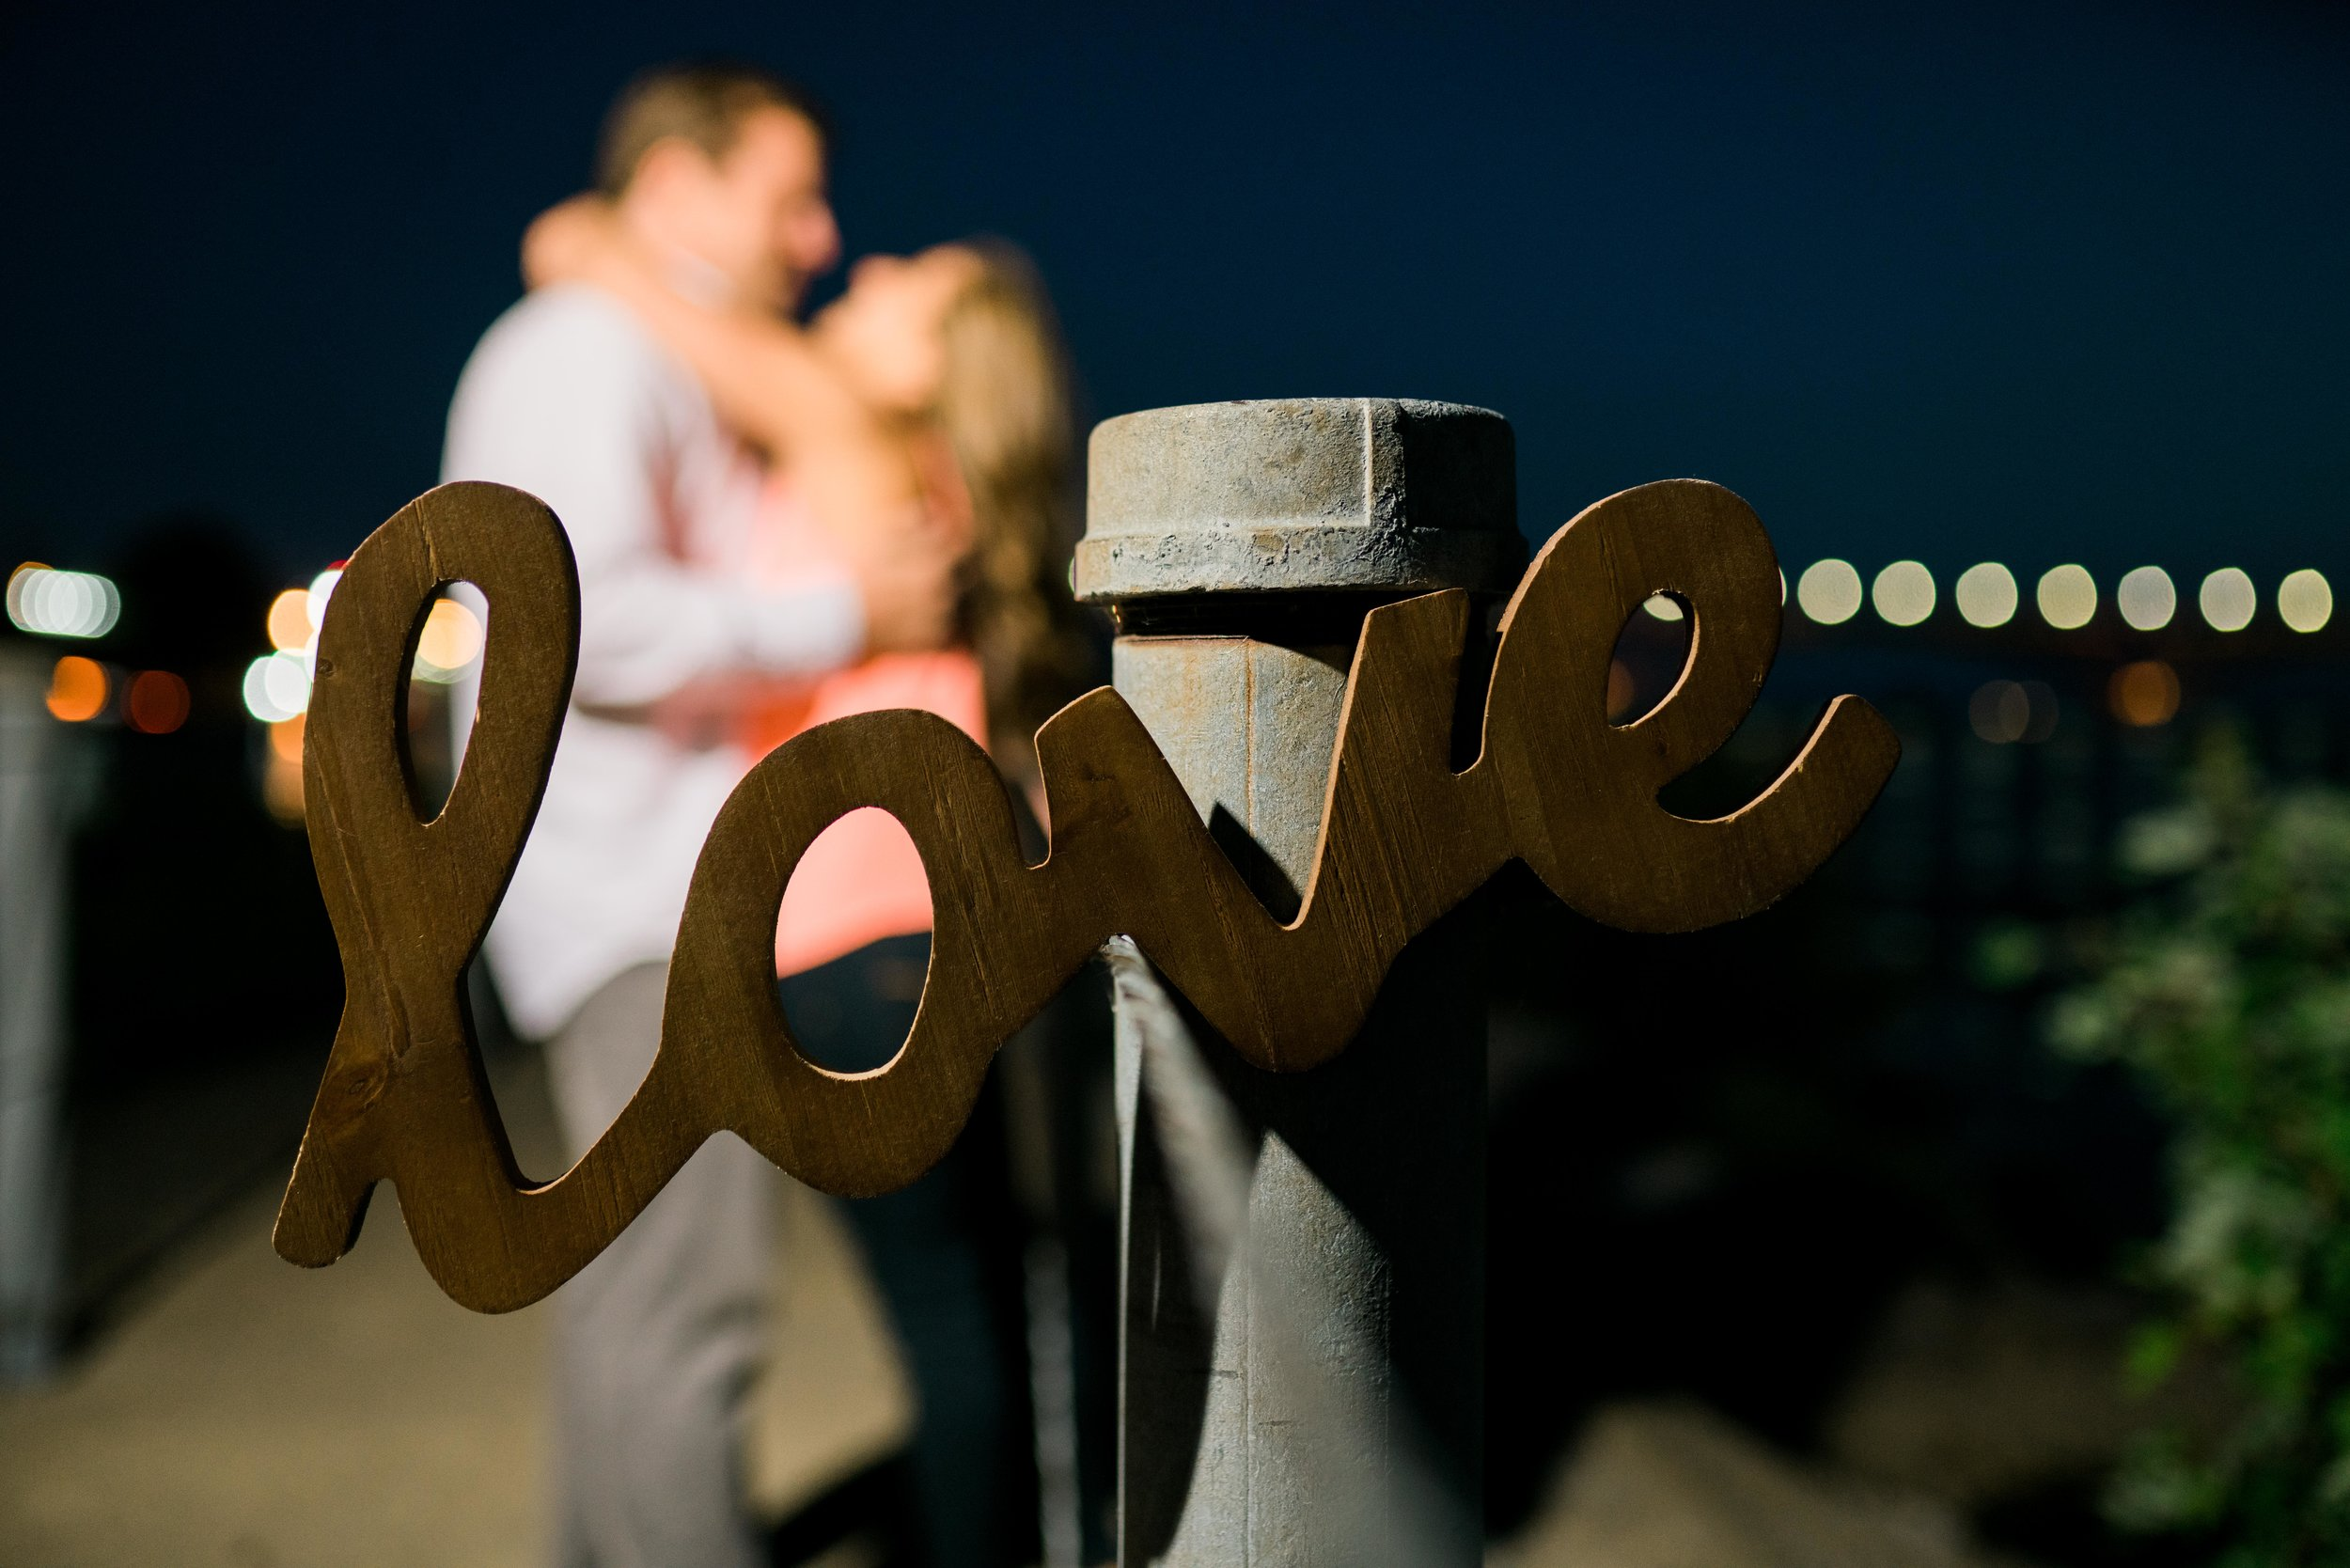 Nancy and David Engagement Photography by Stefan Ludwig in Buffalo NY-52.jpg